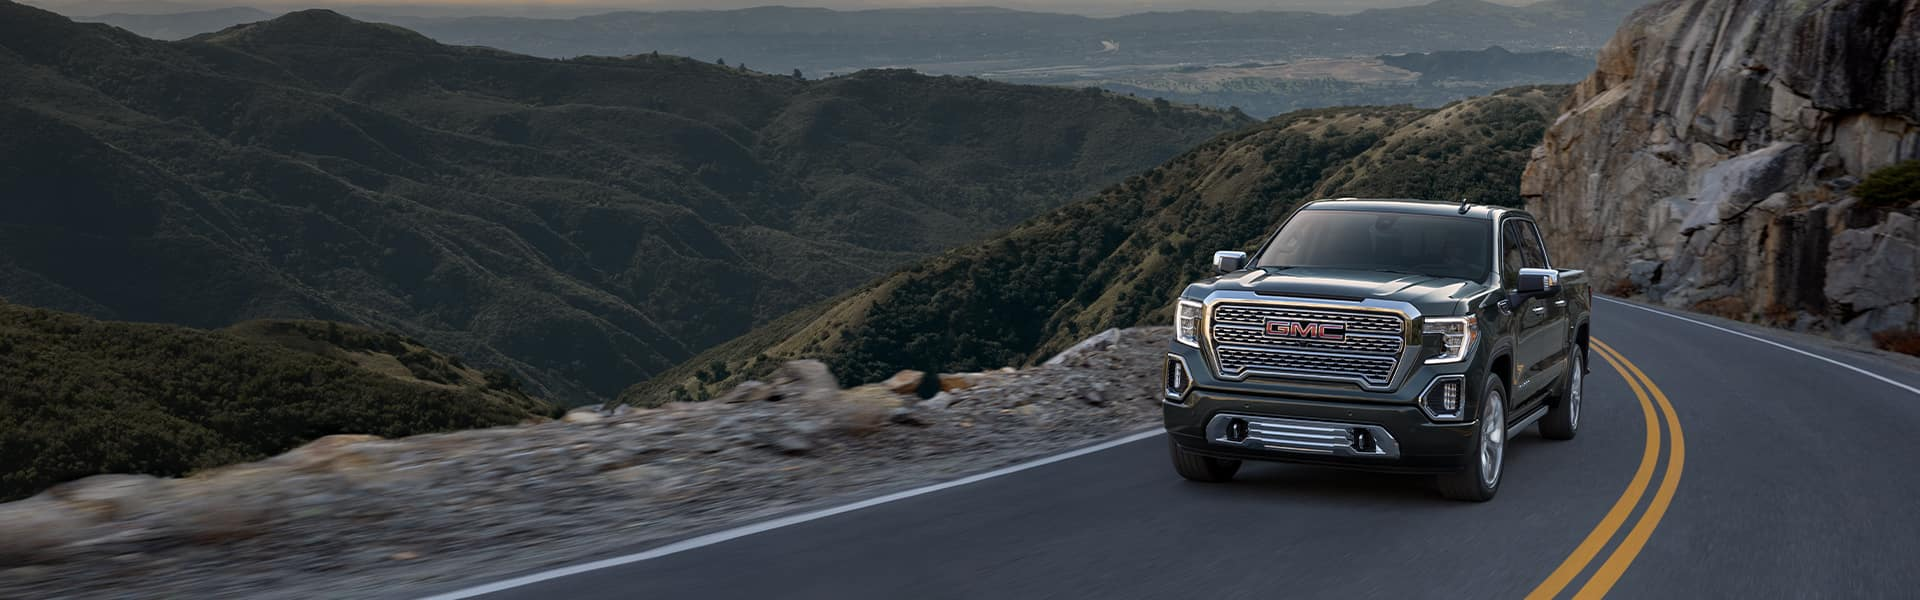 Performance features of the 2021 Sierra at Jack Giambalvo Buick-GMC of York | 2021 GMC Sierra driving through the Northern California hills